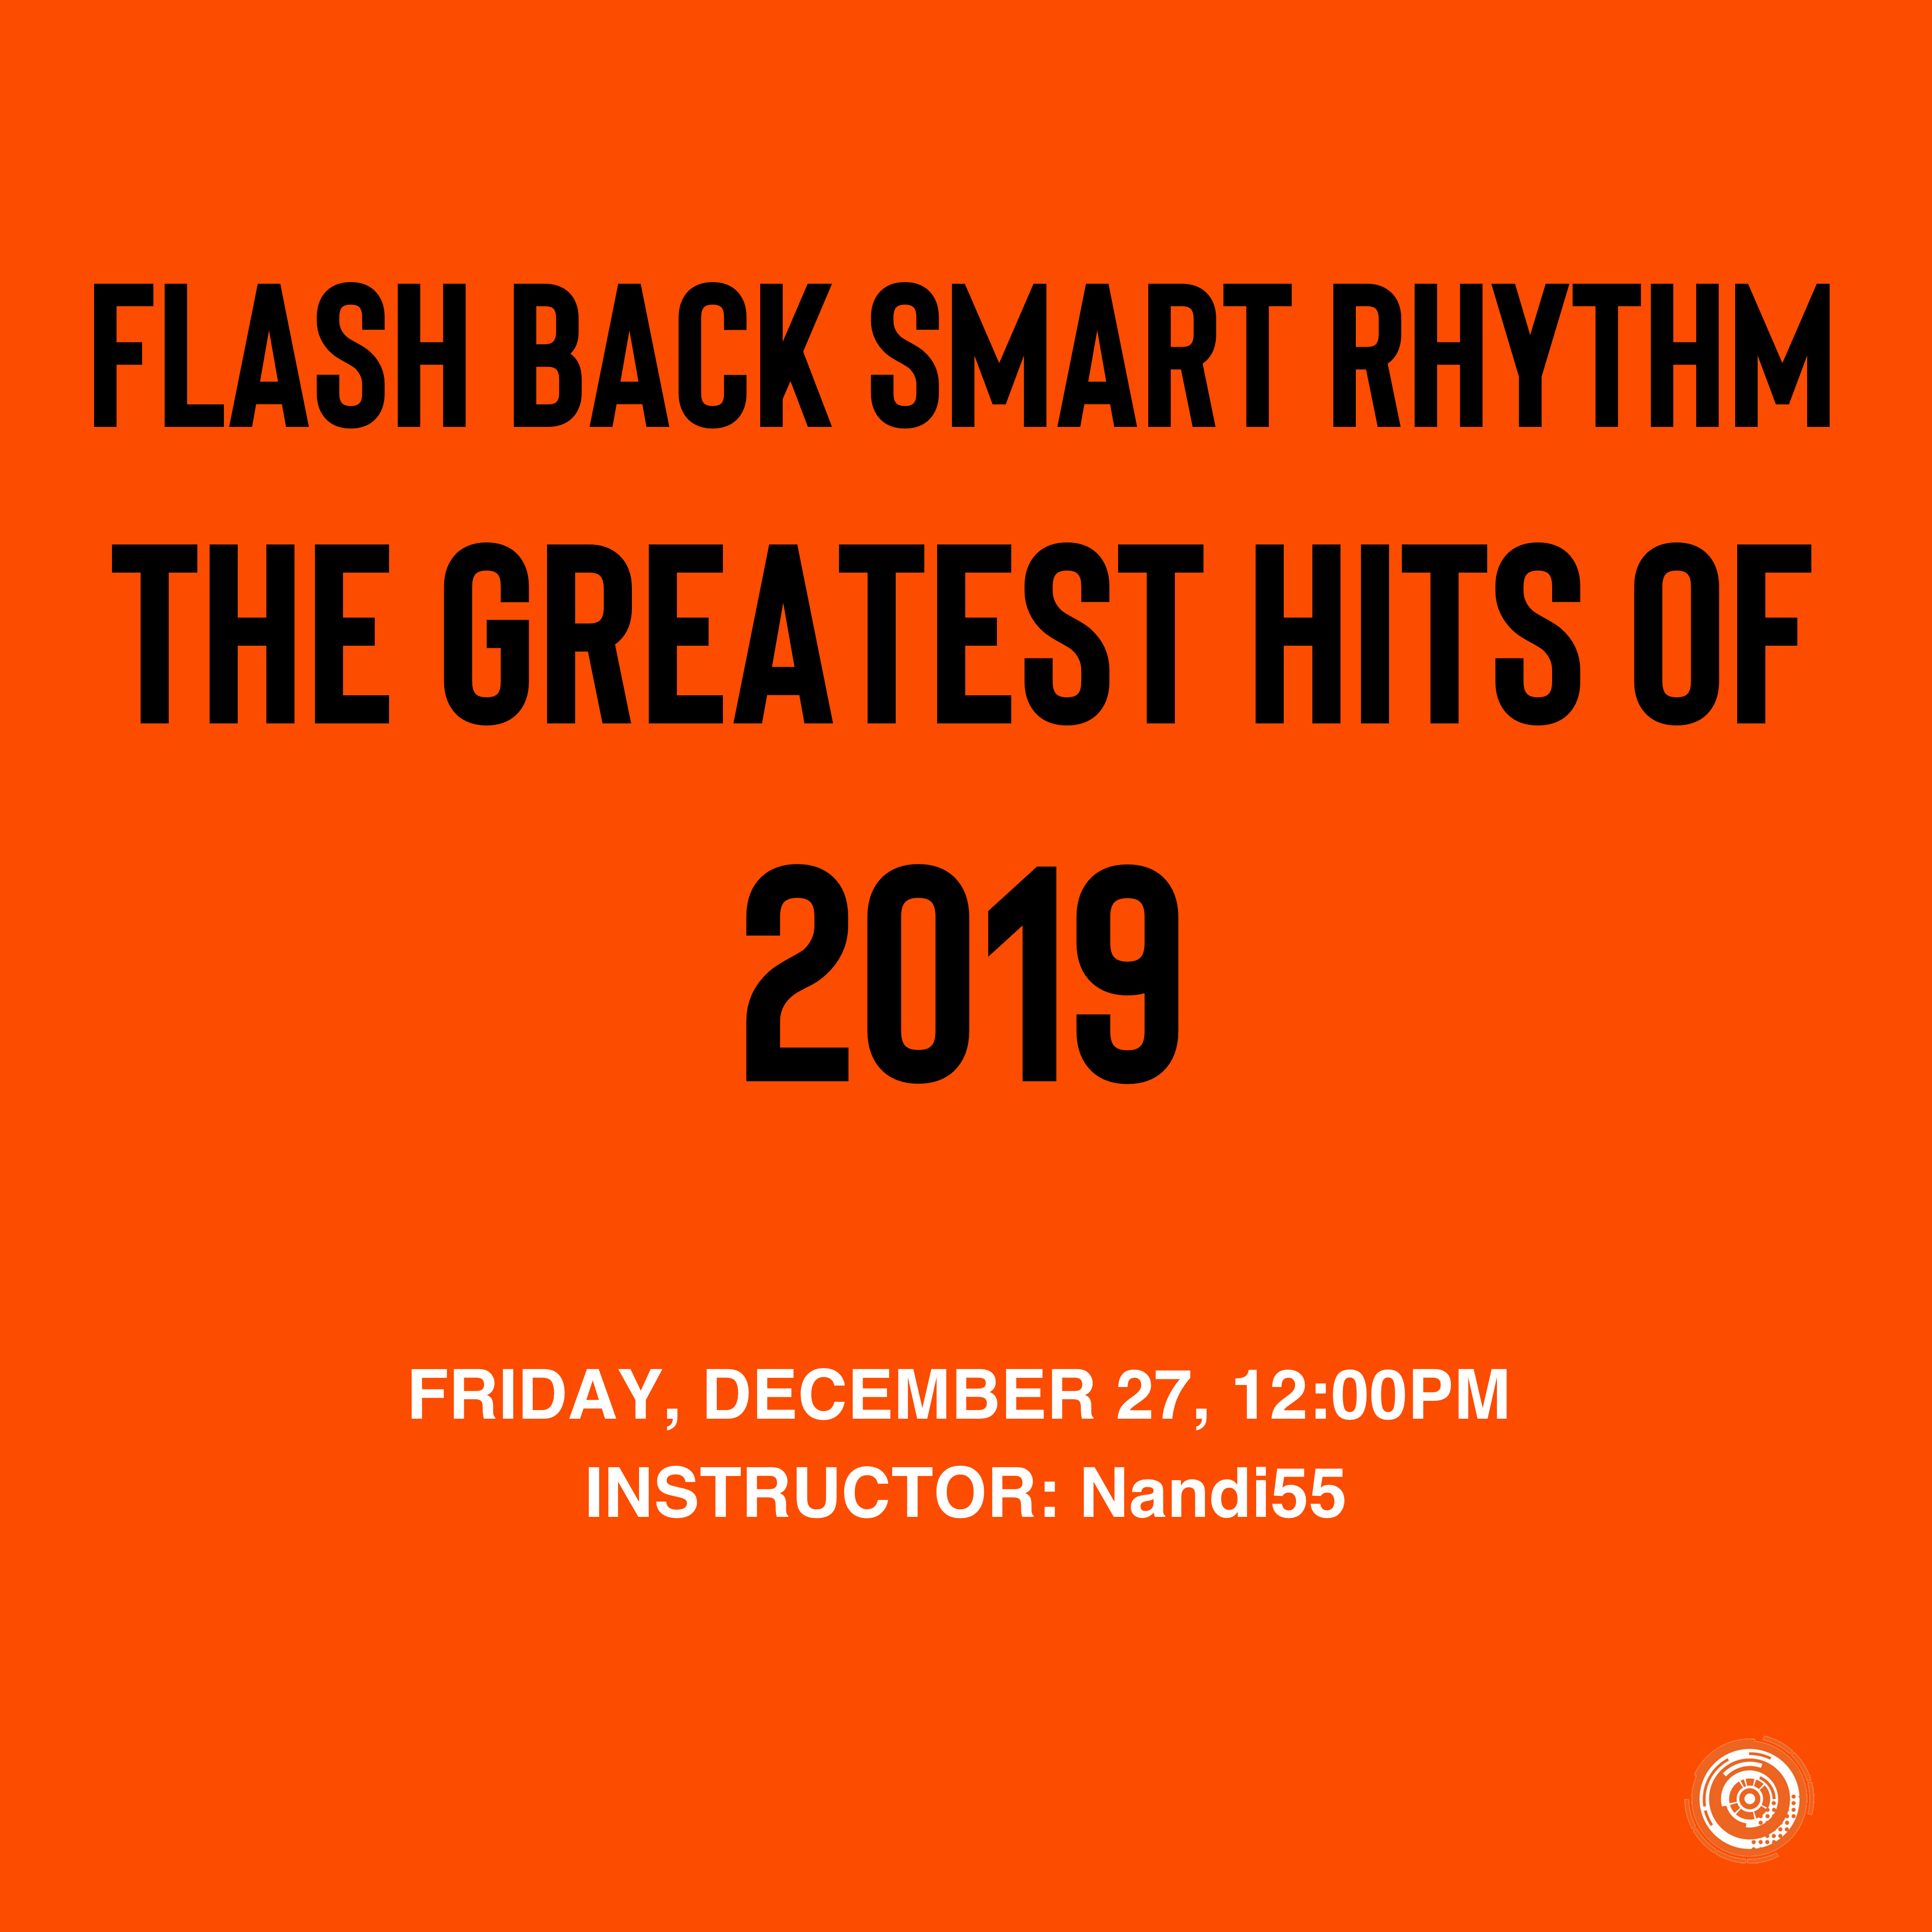 Flash Back Smart Rhythm: The Greatest Hits of 2019